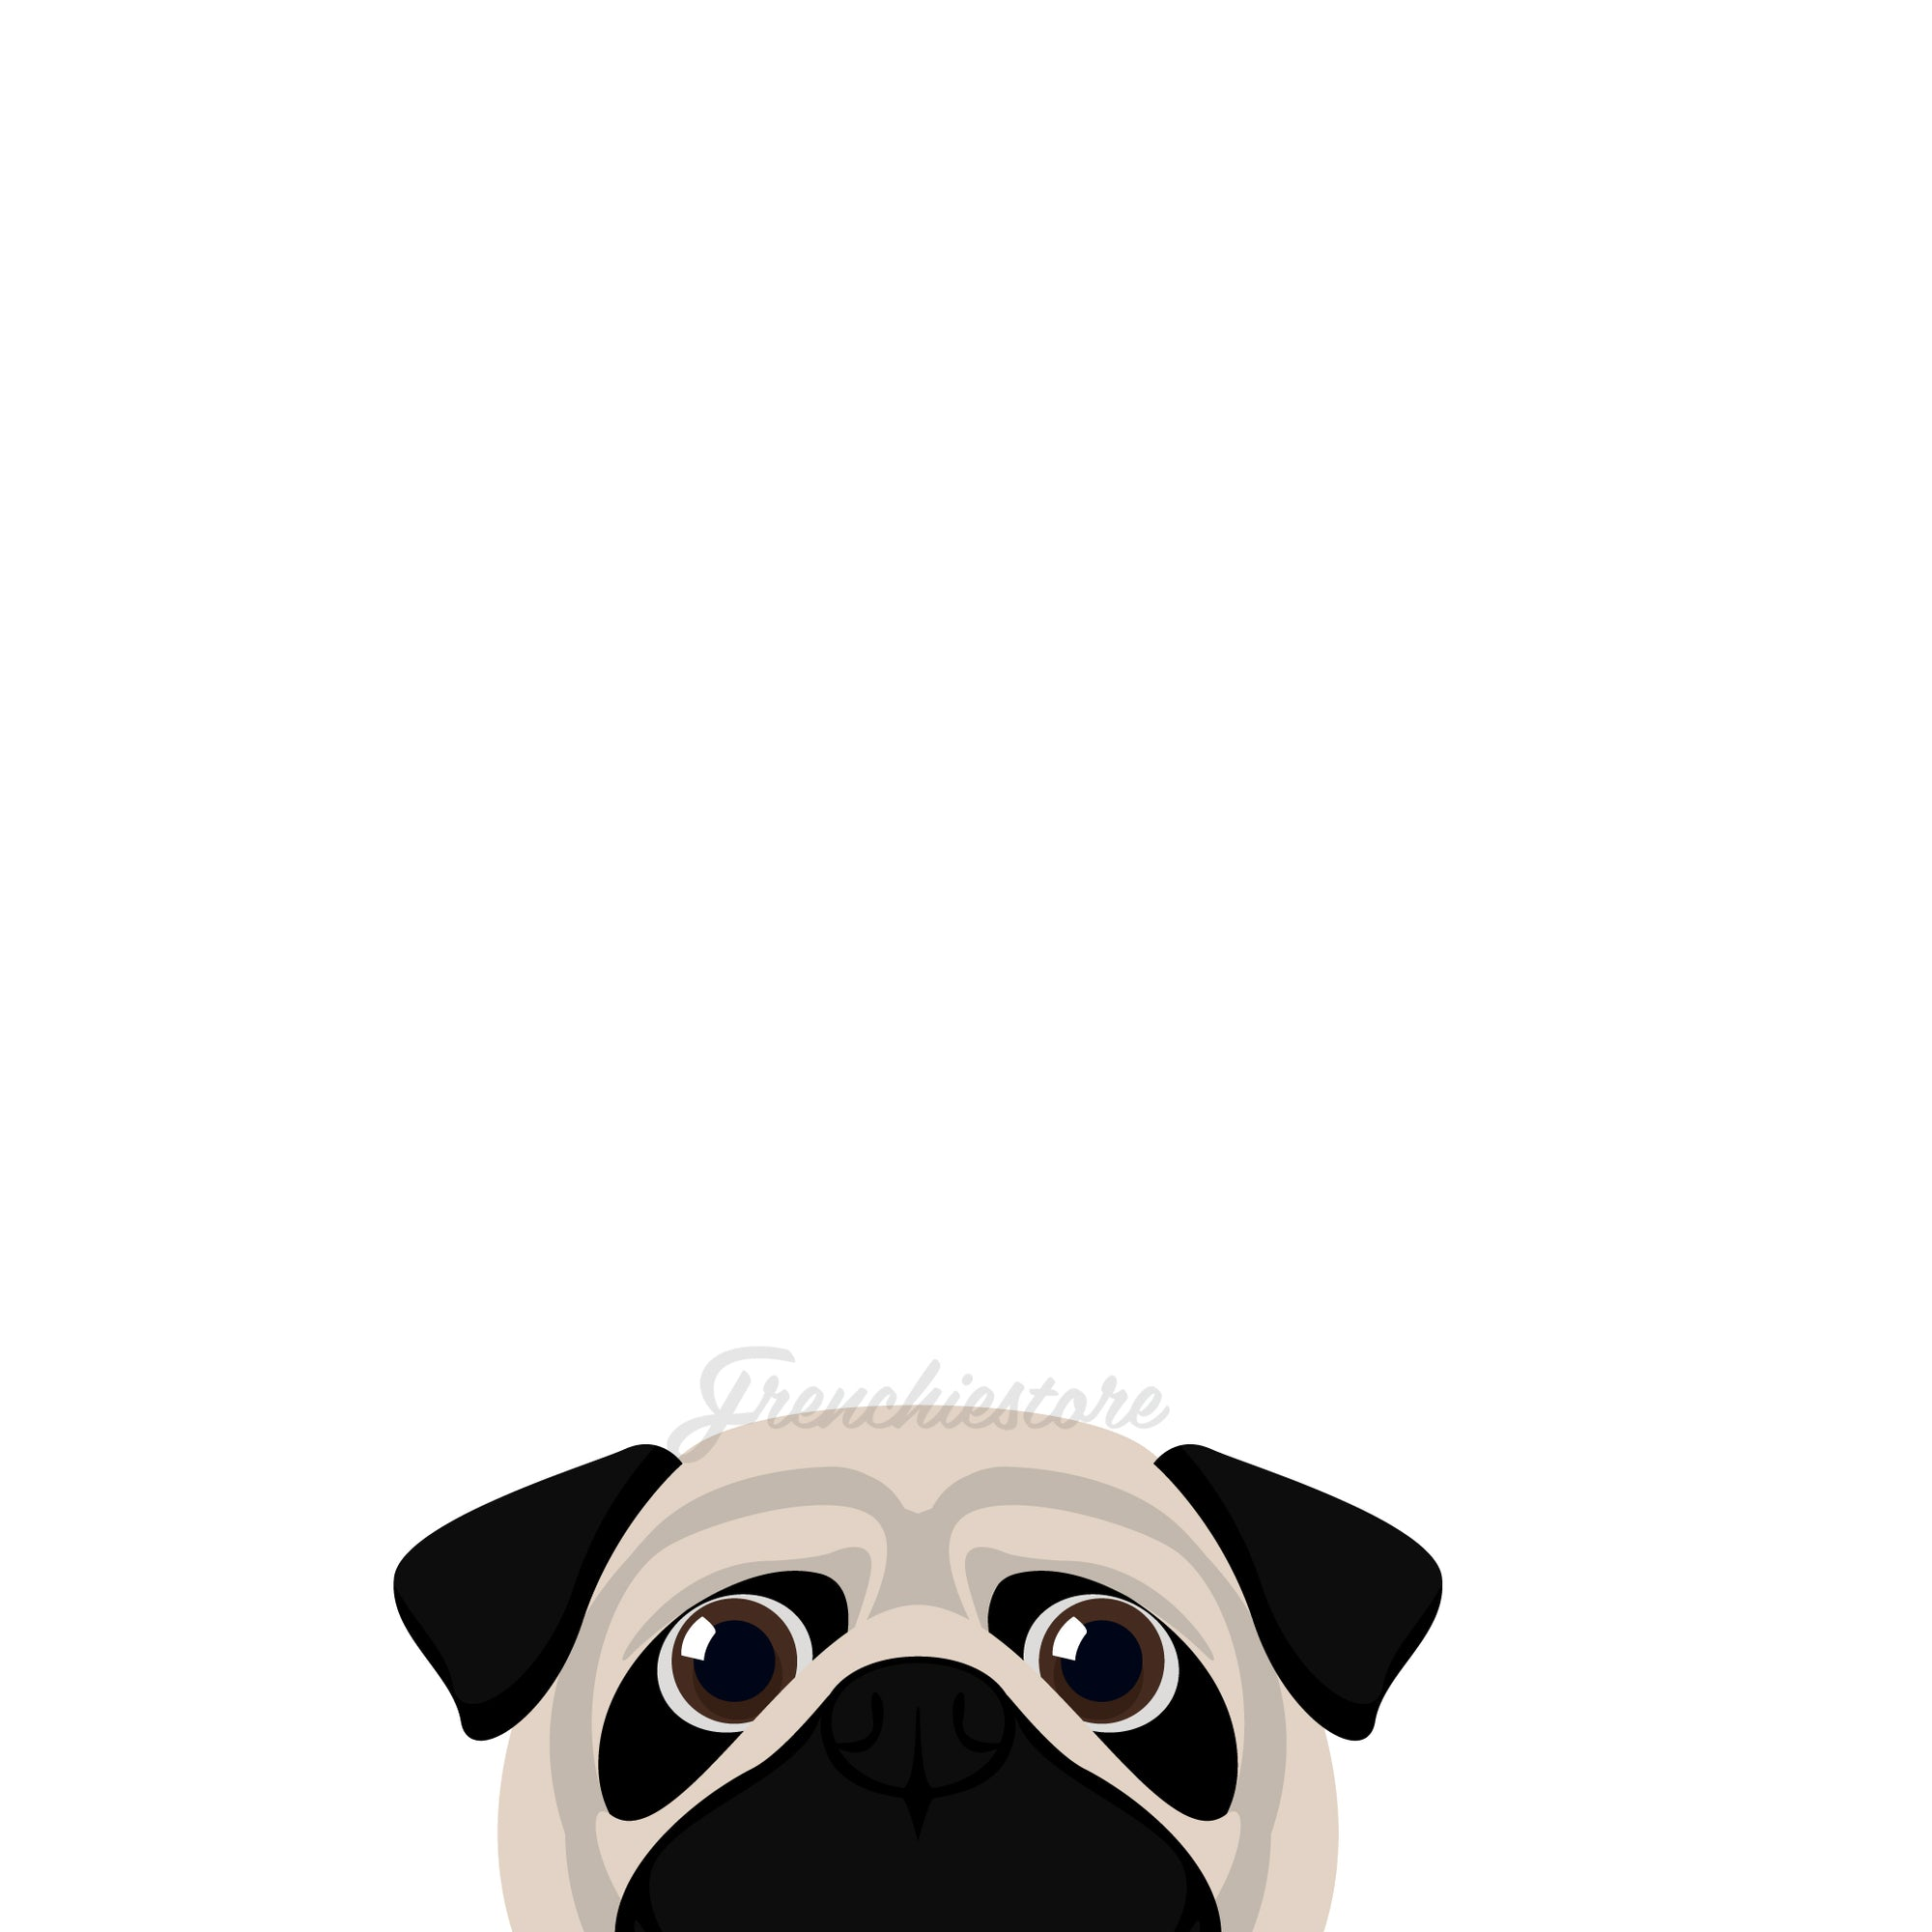 Pug Dog Sticker | Frenchiestore |  Fawn Pug Car Decal, Frenchie Dog, French Bulldog pet products